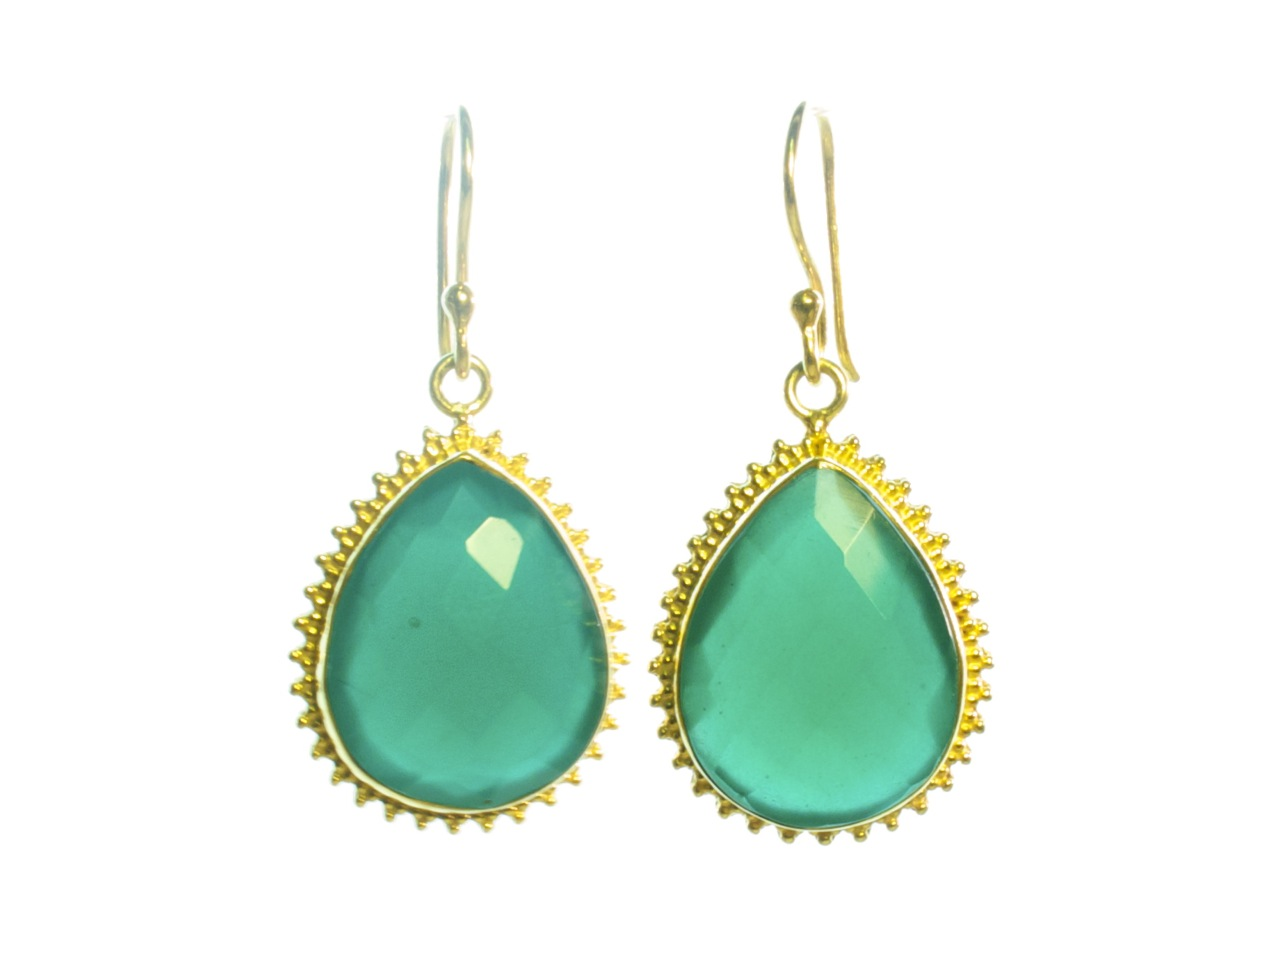 Earring Green Onyx In Toothed Setting – E1315